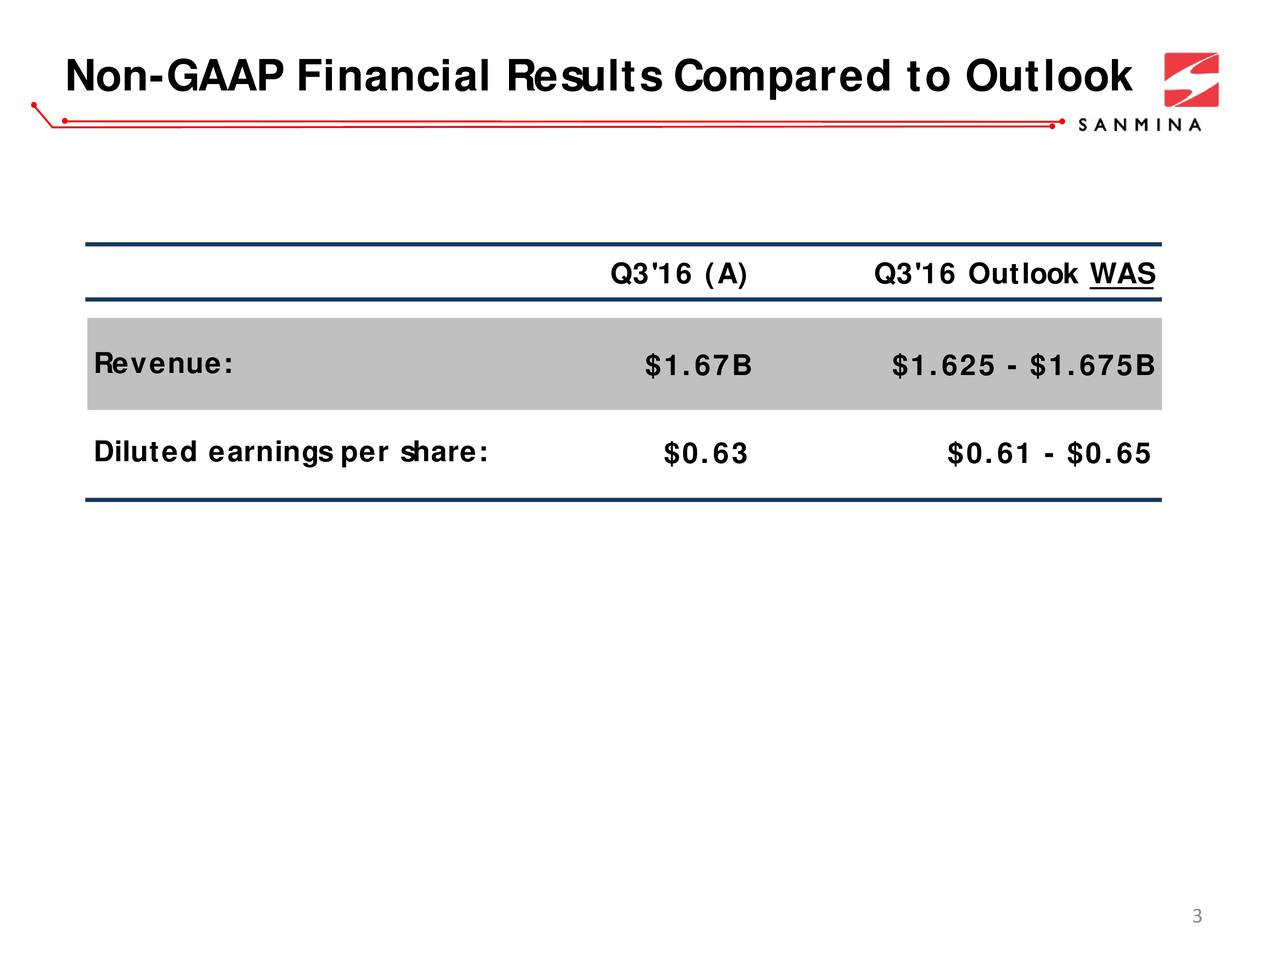 Q3'16 (A) Q3'16 Outlook WAS Revenue: $1.67B $1.625 - $1.675B Diluted earnings per share: $0.63 $0.61 - $0.65 3